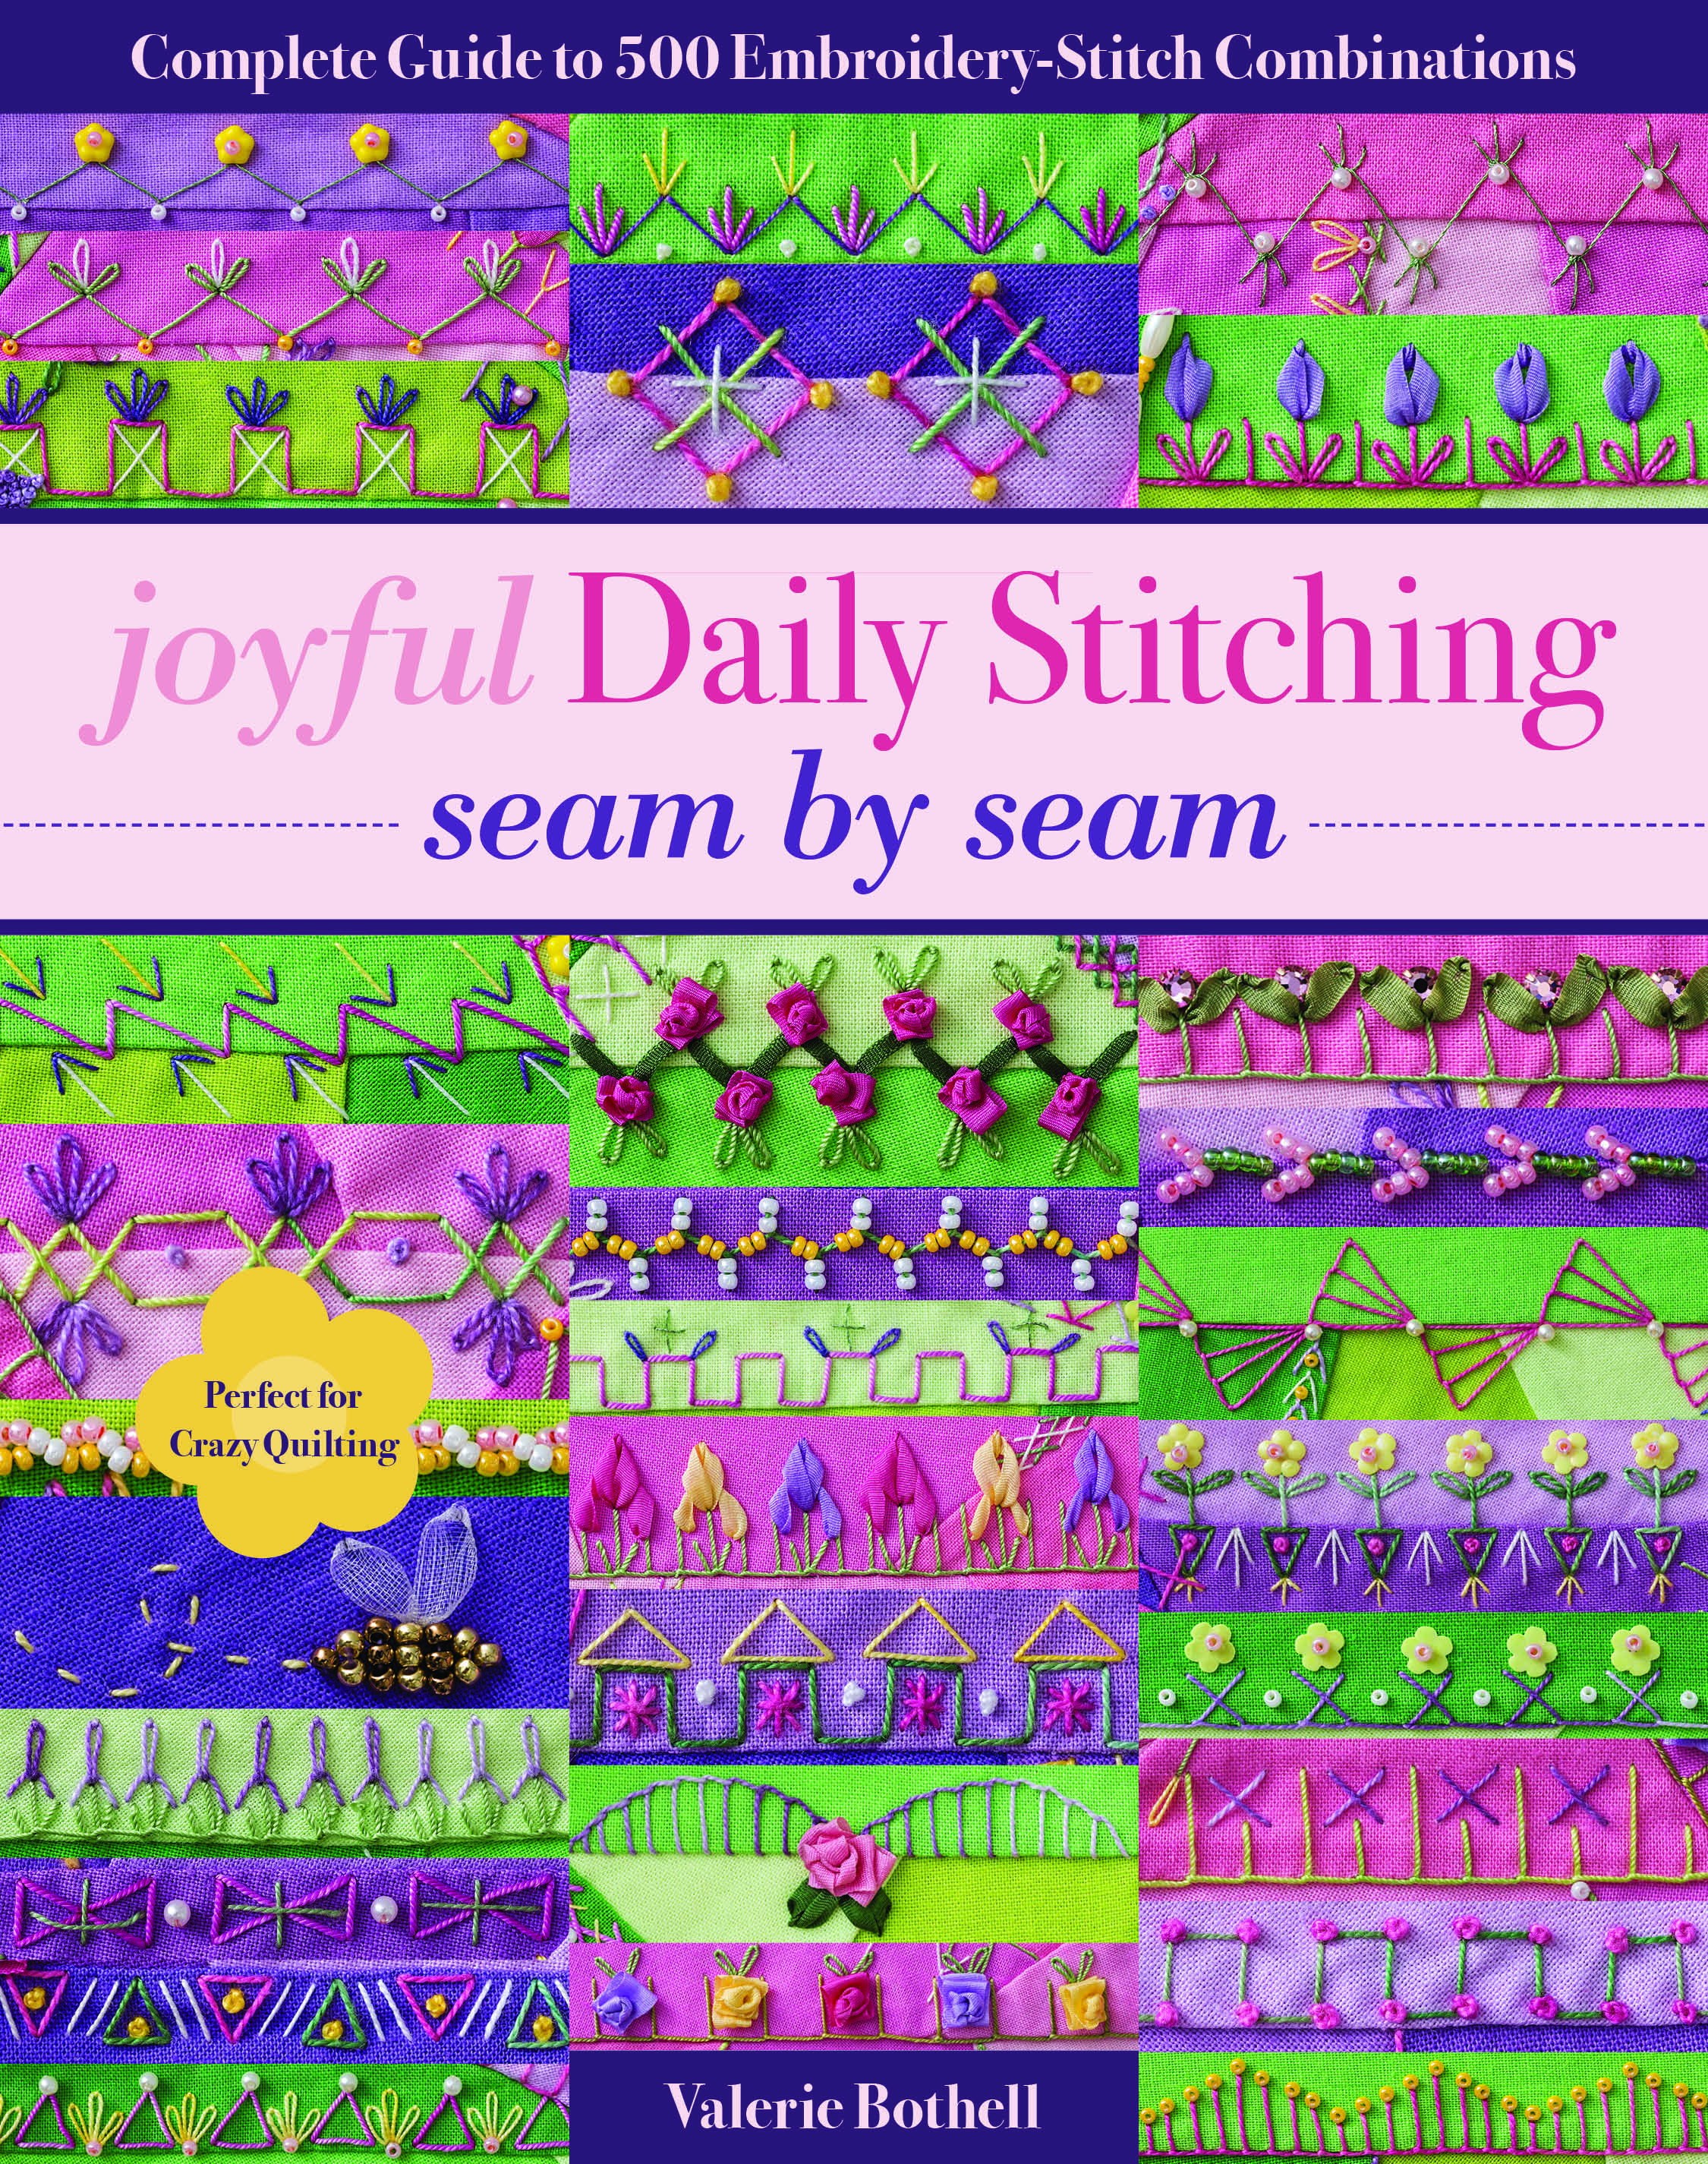 Joyful Daily Stitching, Seam by Seam: Complete Guide to 500 Embroidery-Stitch Combinations, Perfect for Crazy Quilting by Valerie Bothell, ISBN: 9781617455513